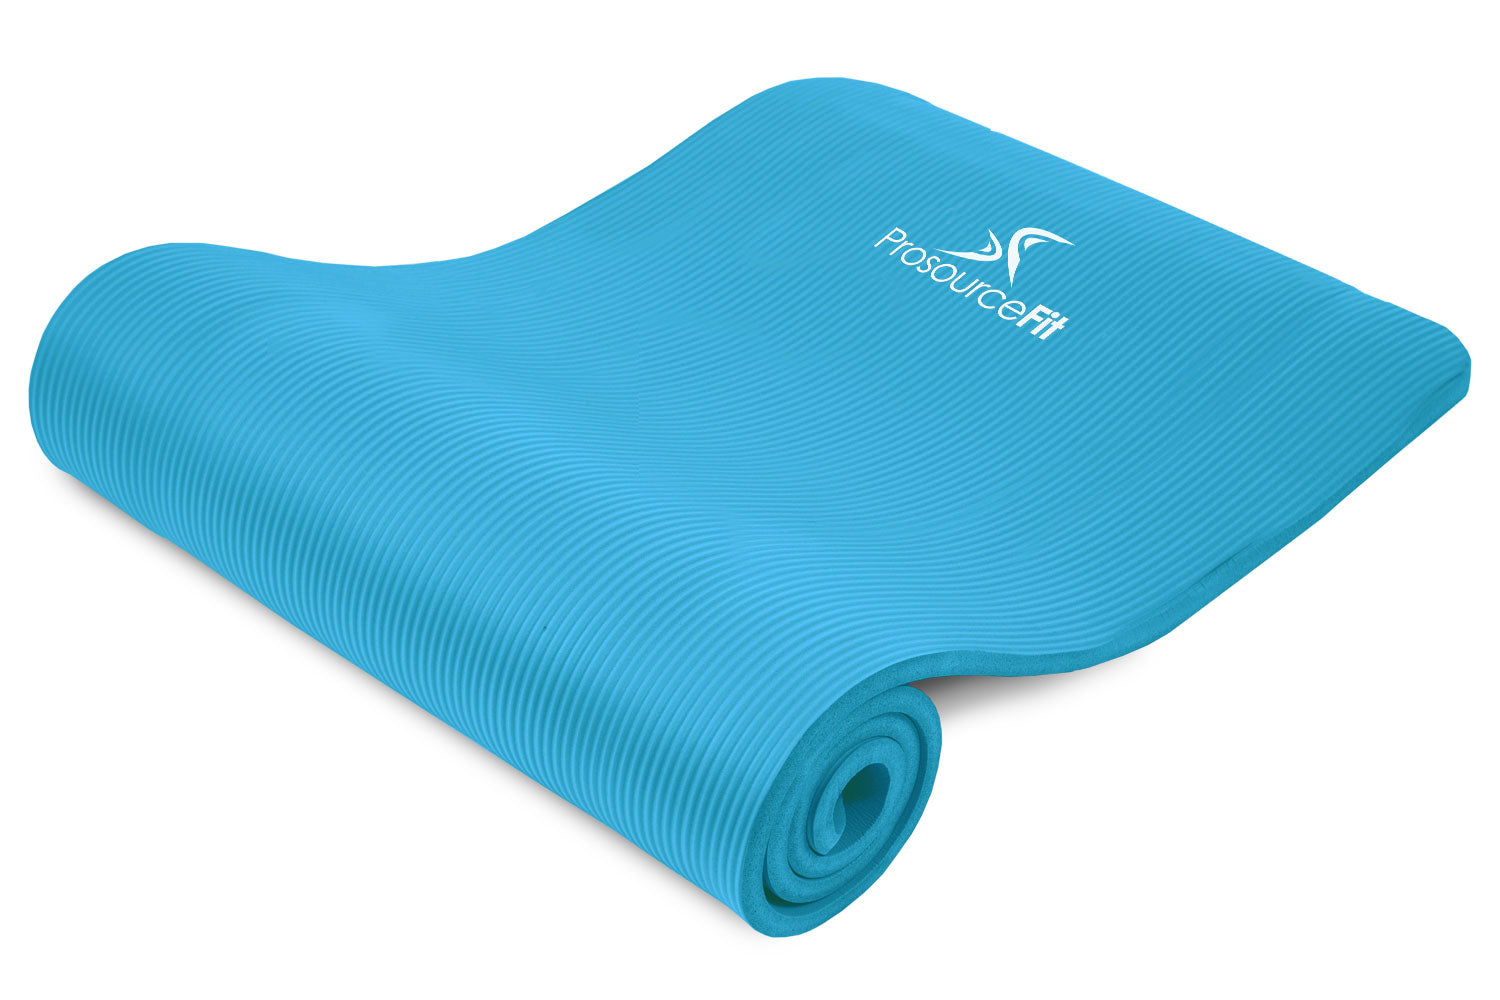 Aqua Extra Thick Yoga and Pilates Mat 1/2 inch